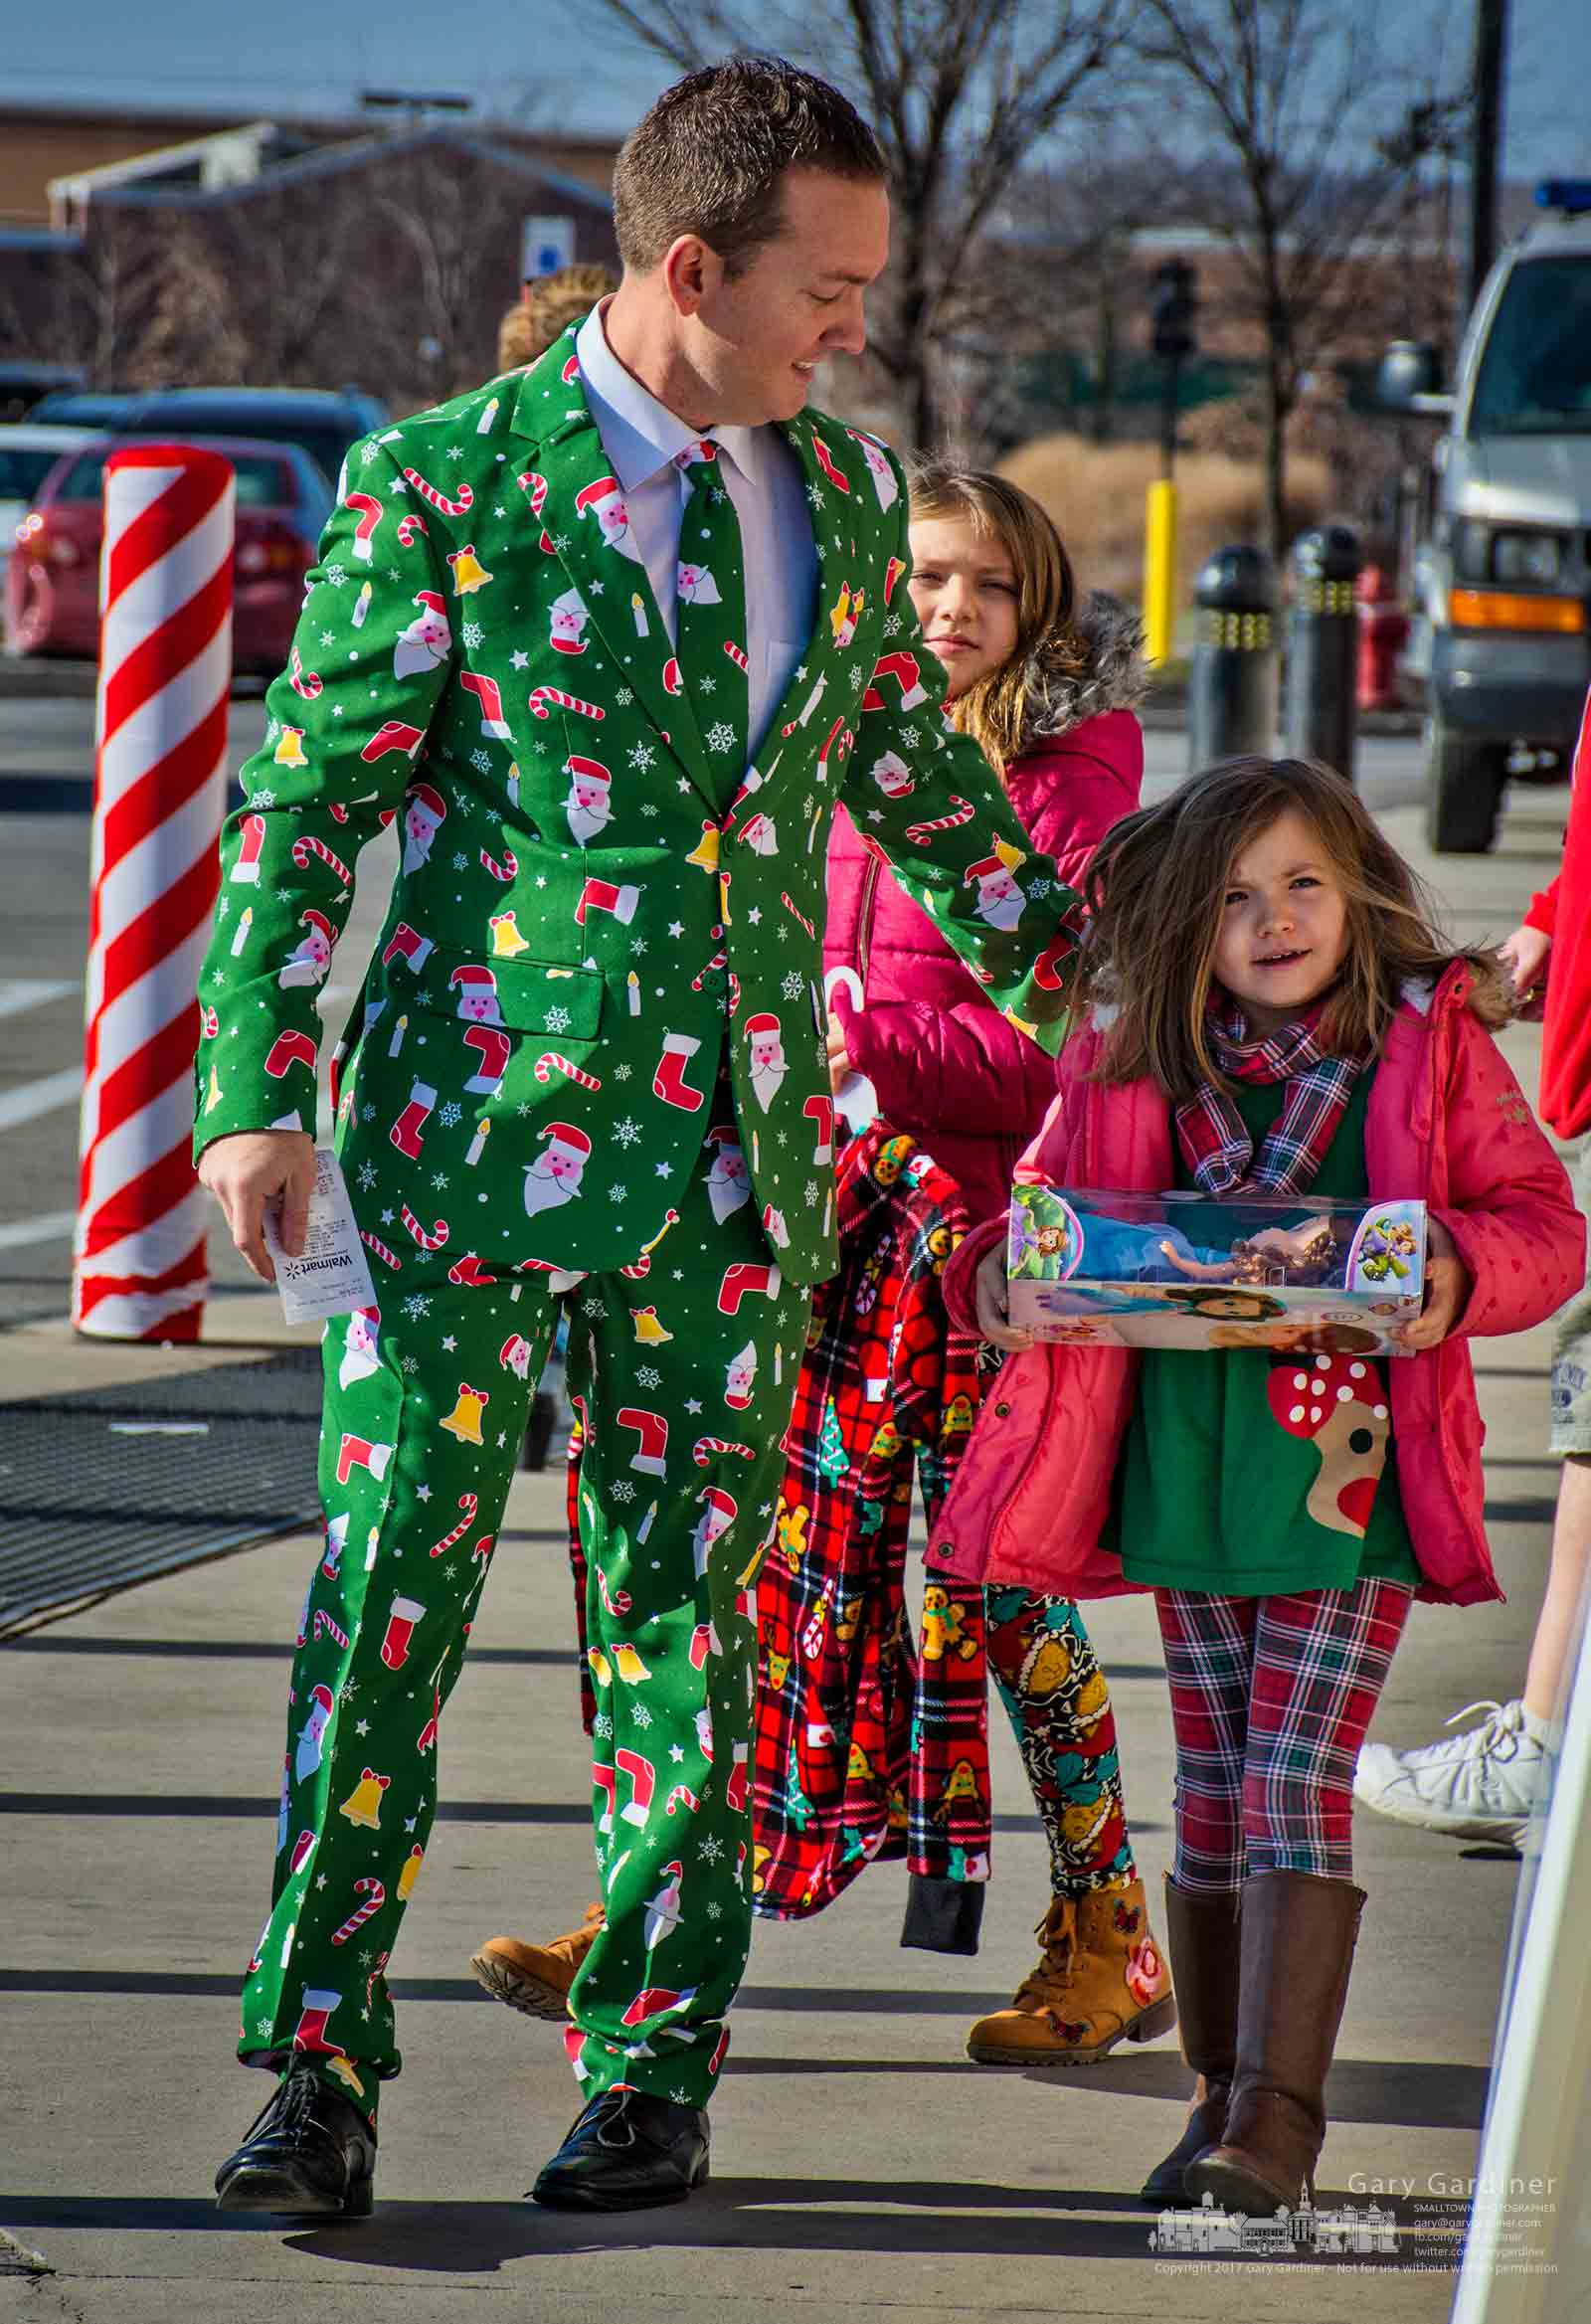 A father wearing the Christmas ugly sweater competition suit he will wear to a family gathering walks with his daughters to the Westerville Police W.A.R.M. collection boxes outside Walmart in Westerville. My Final Photo for Dec. 16, 2017.